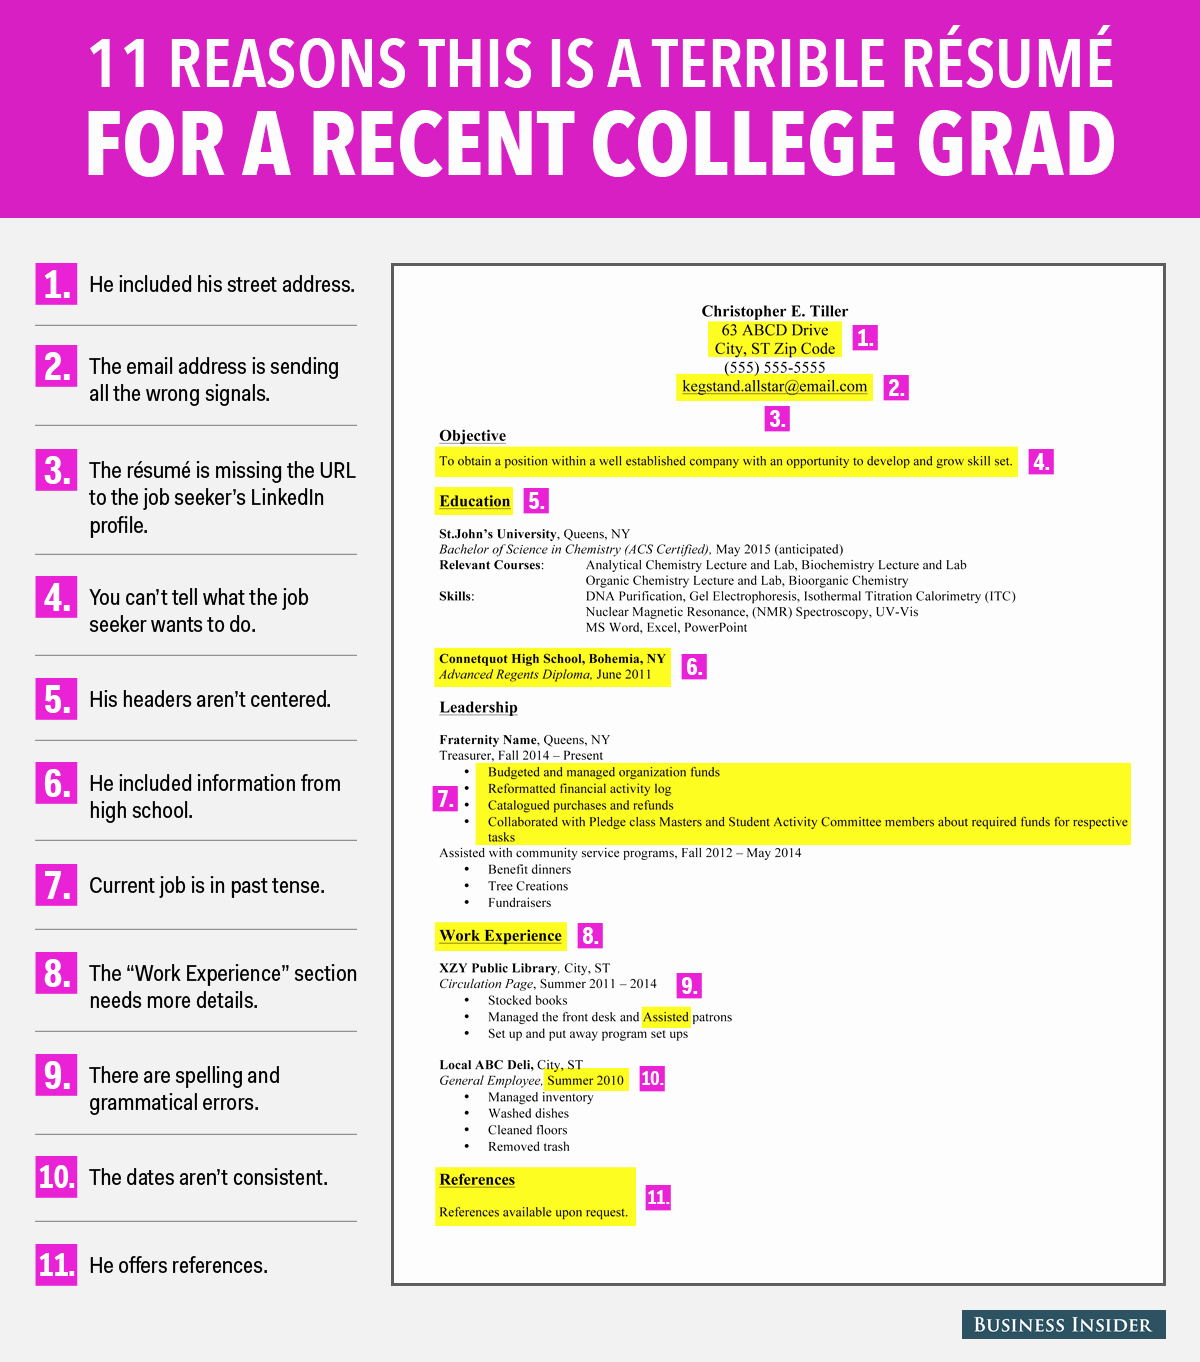 11 Reasons This is A Terrible Résumé for A Recent